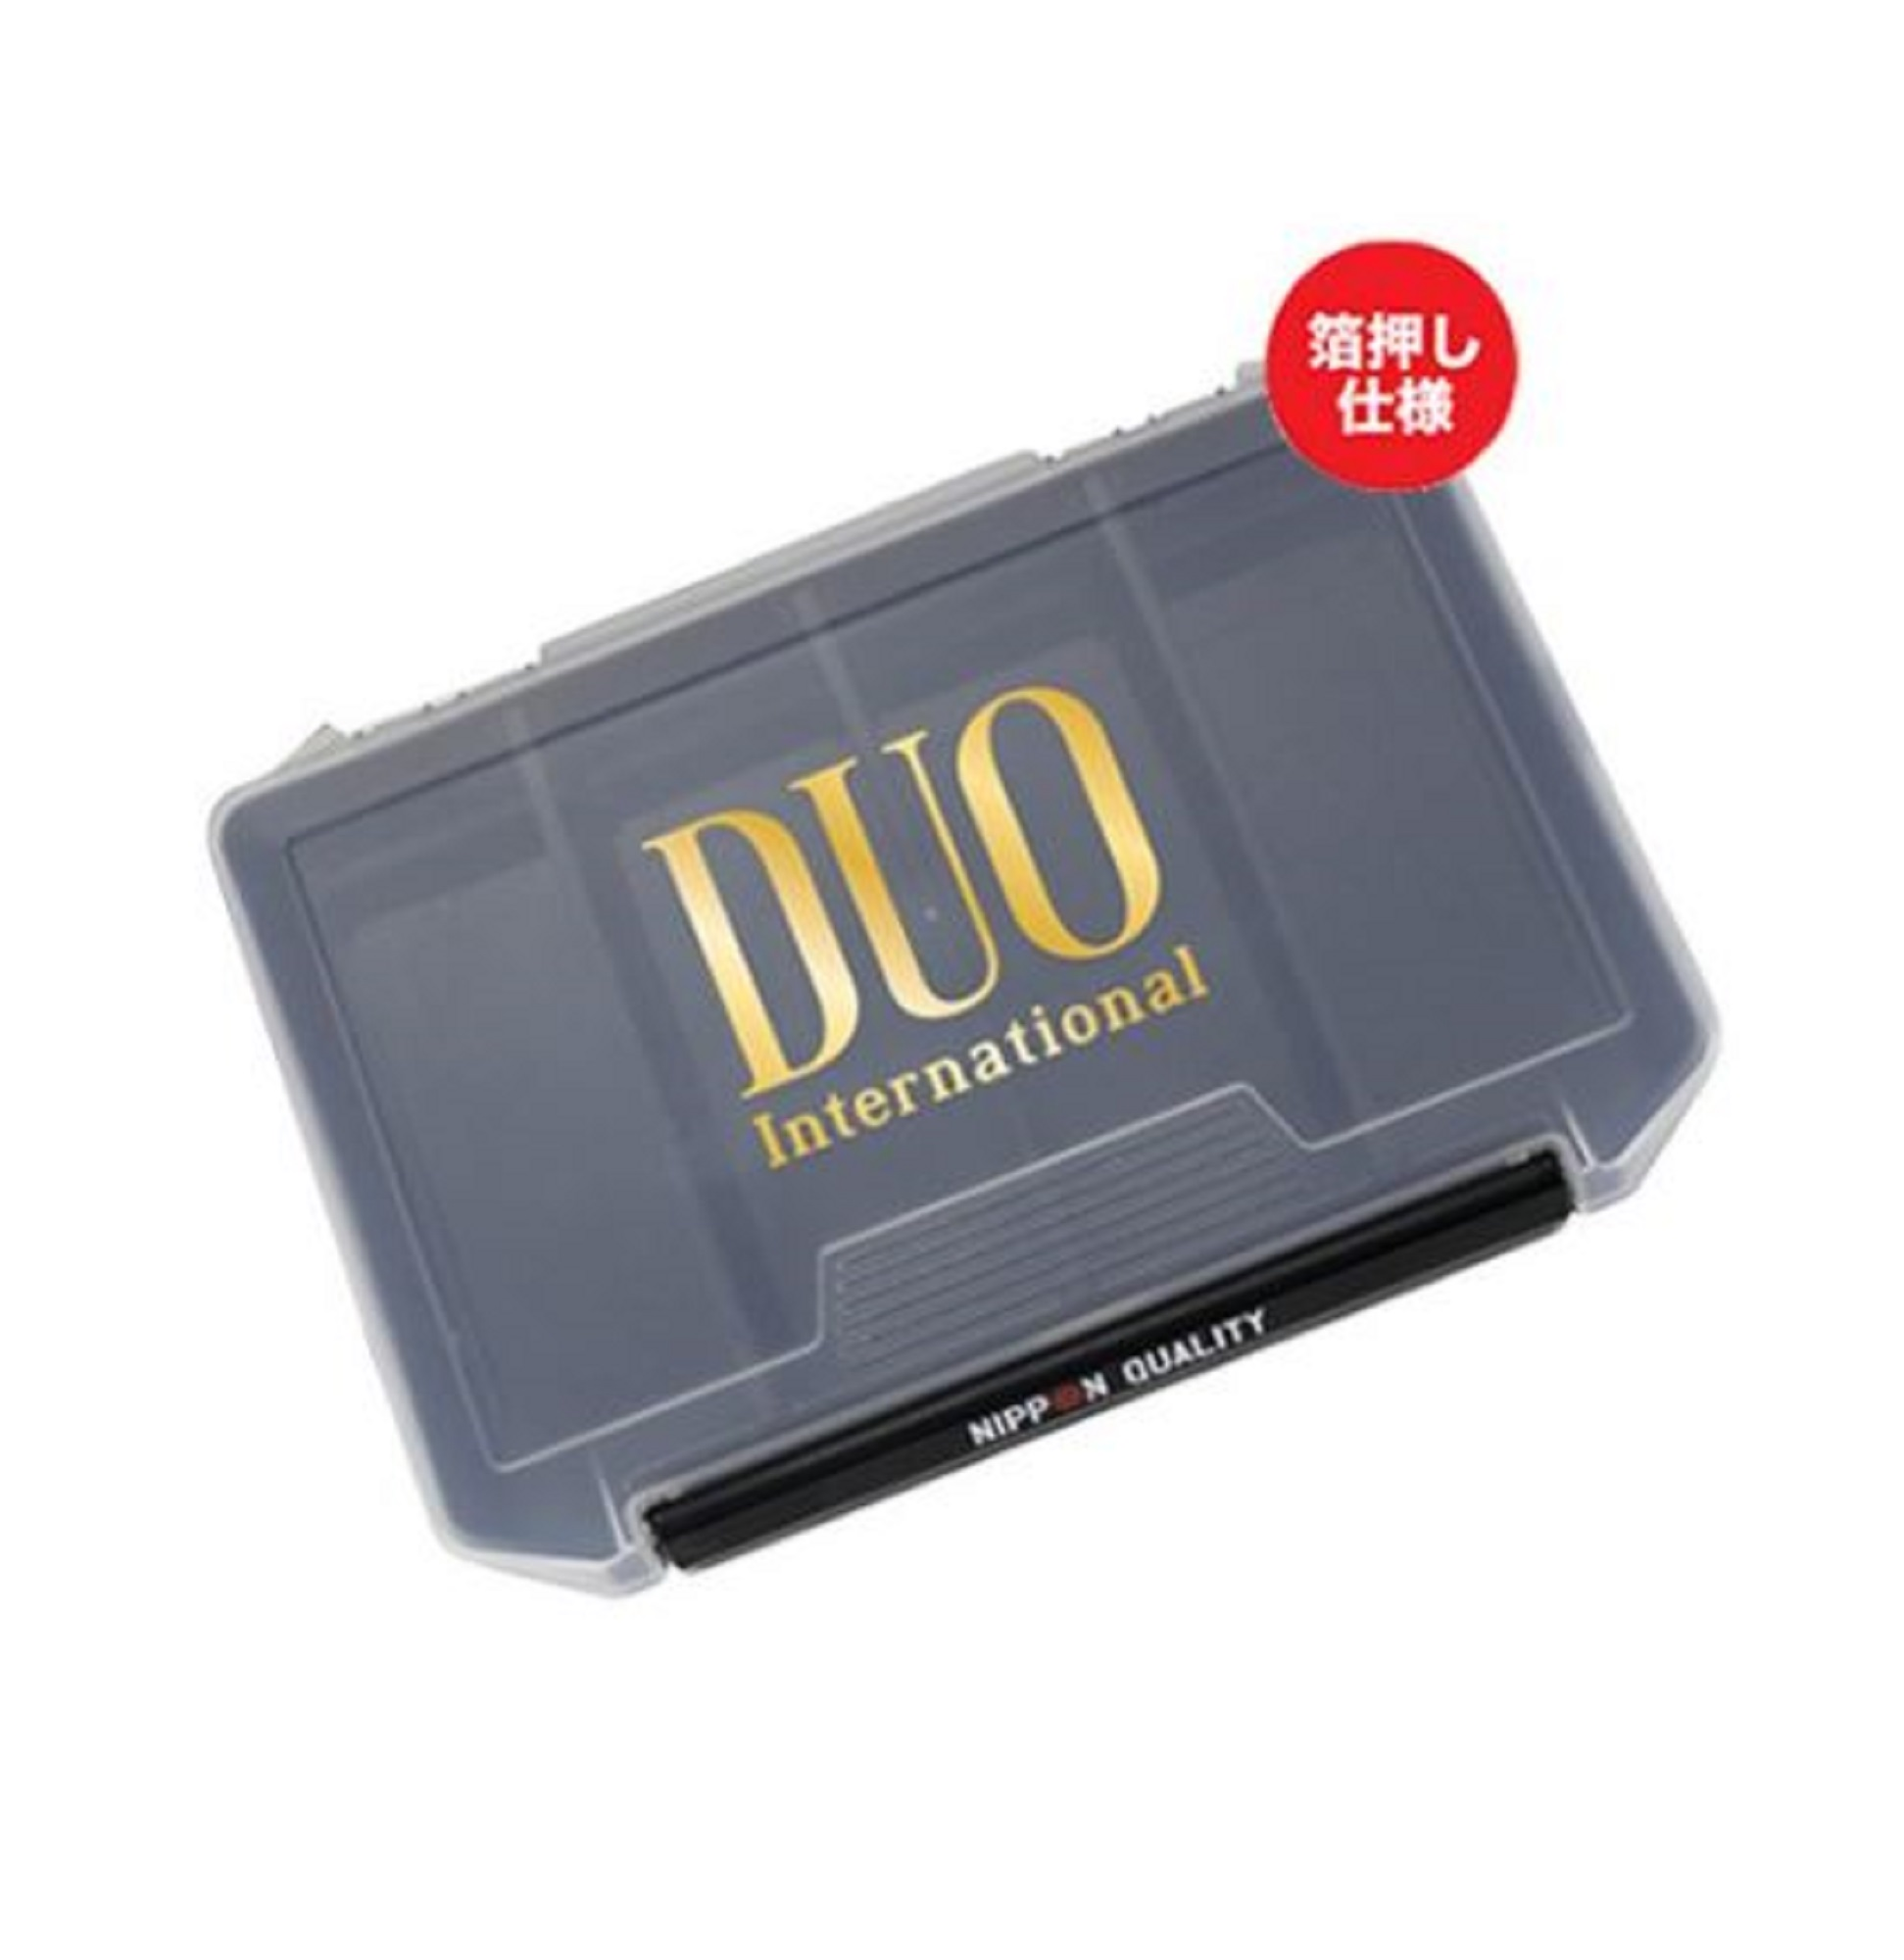 Duo Meiho Tackle Box 3010NDM 205 x 145 x 40 mm Black Gold (8461)